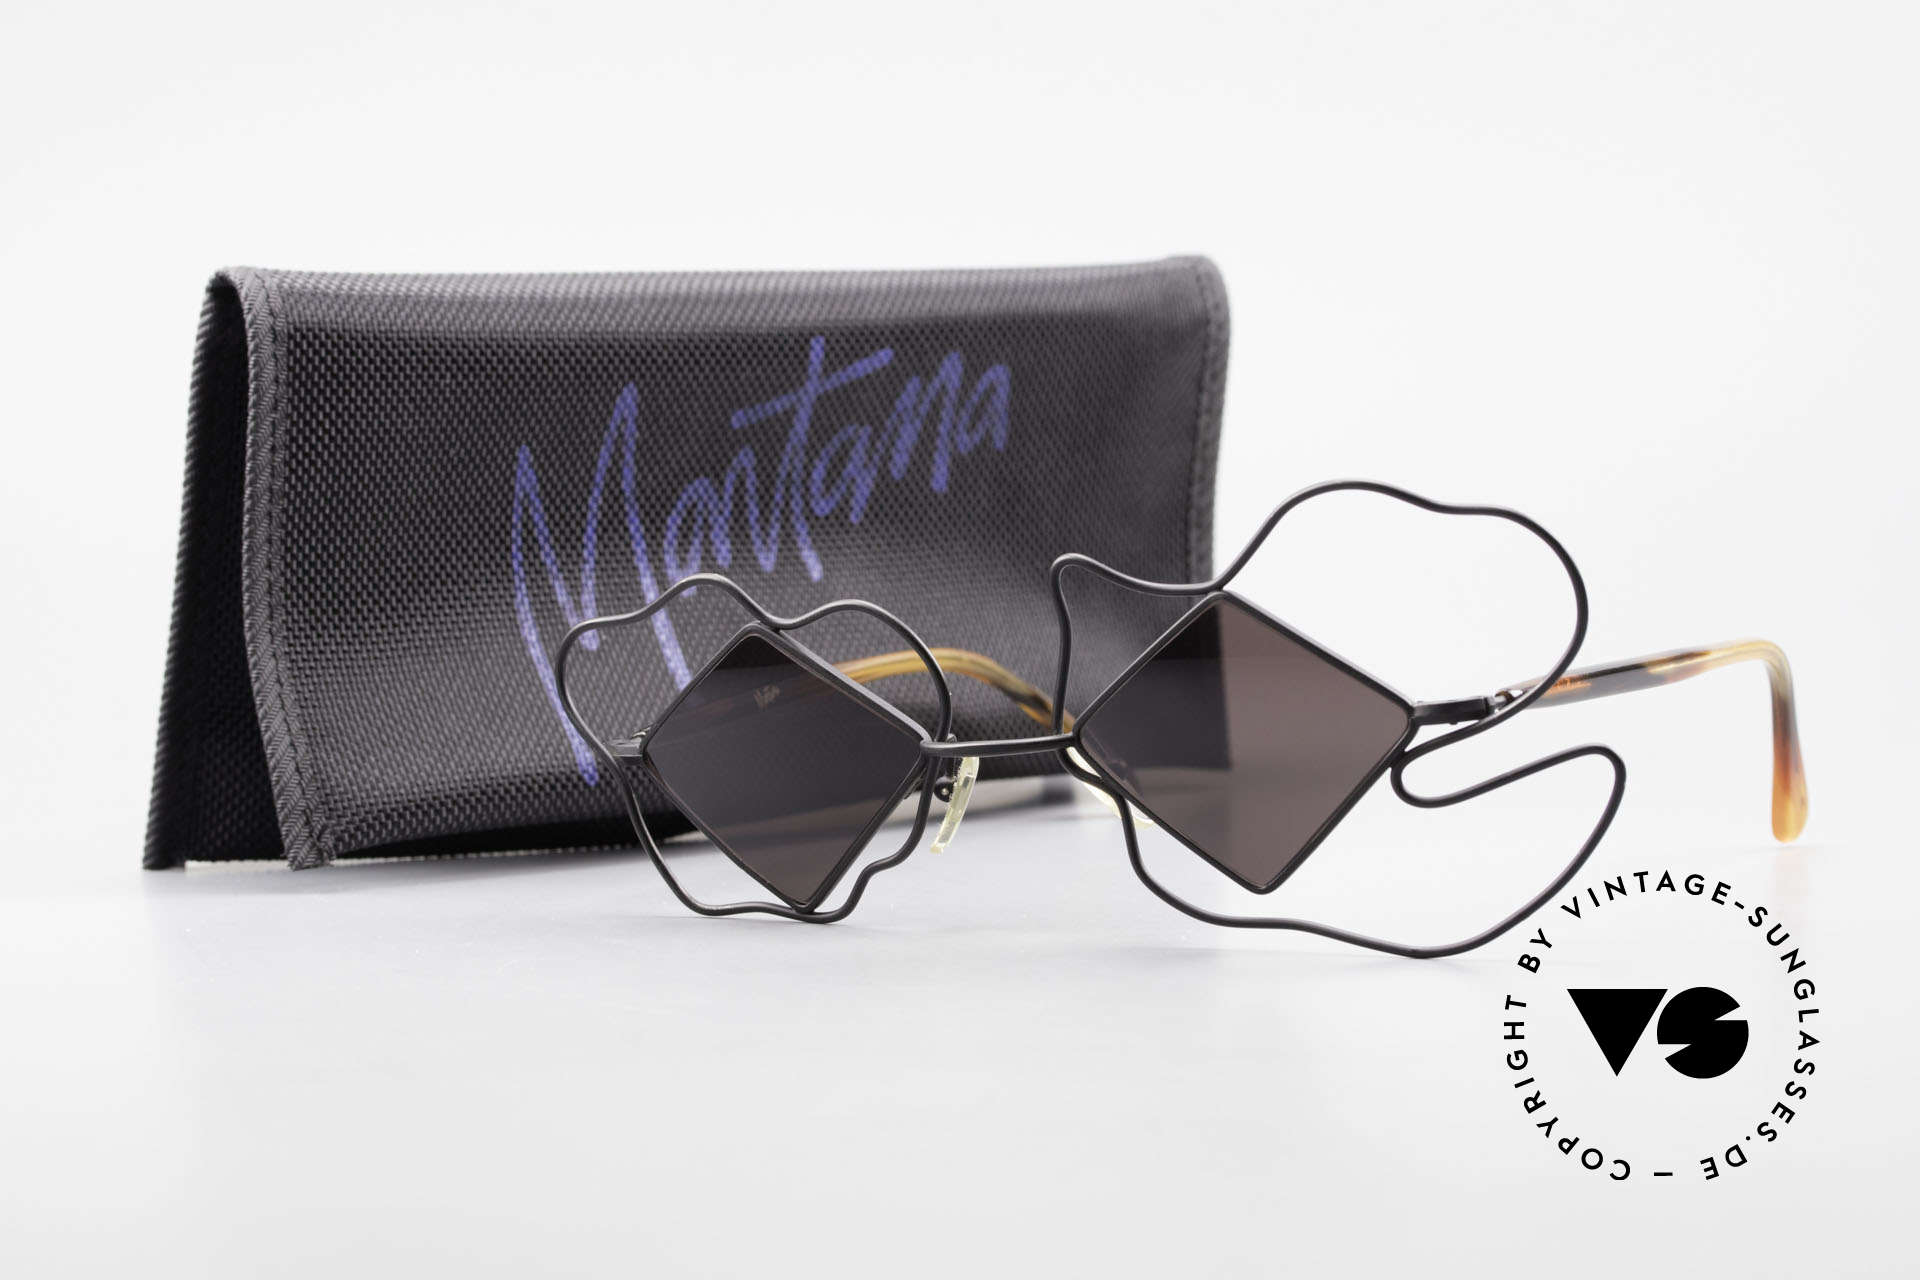 Claude Montana 657 Haute Couture Sunglasses 80s, Size: medium, Made for Women